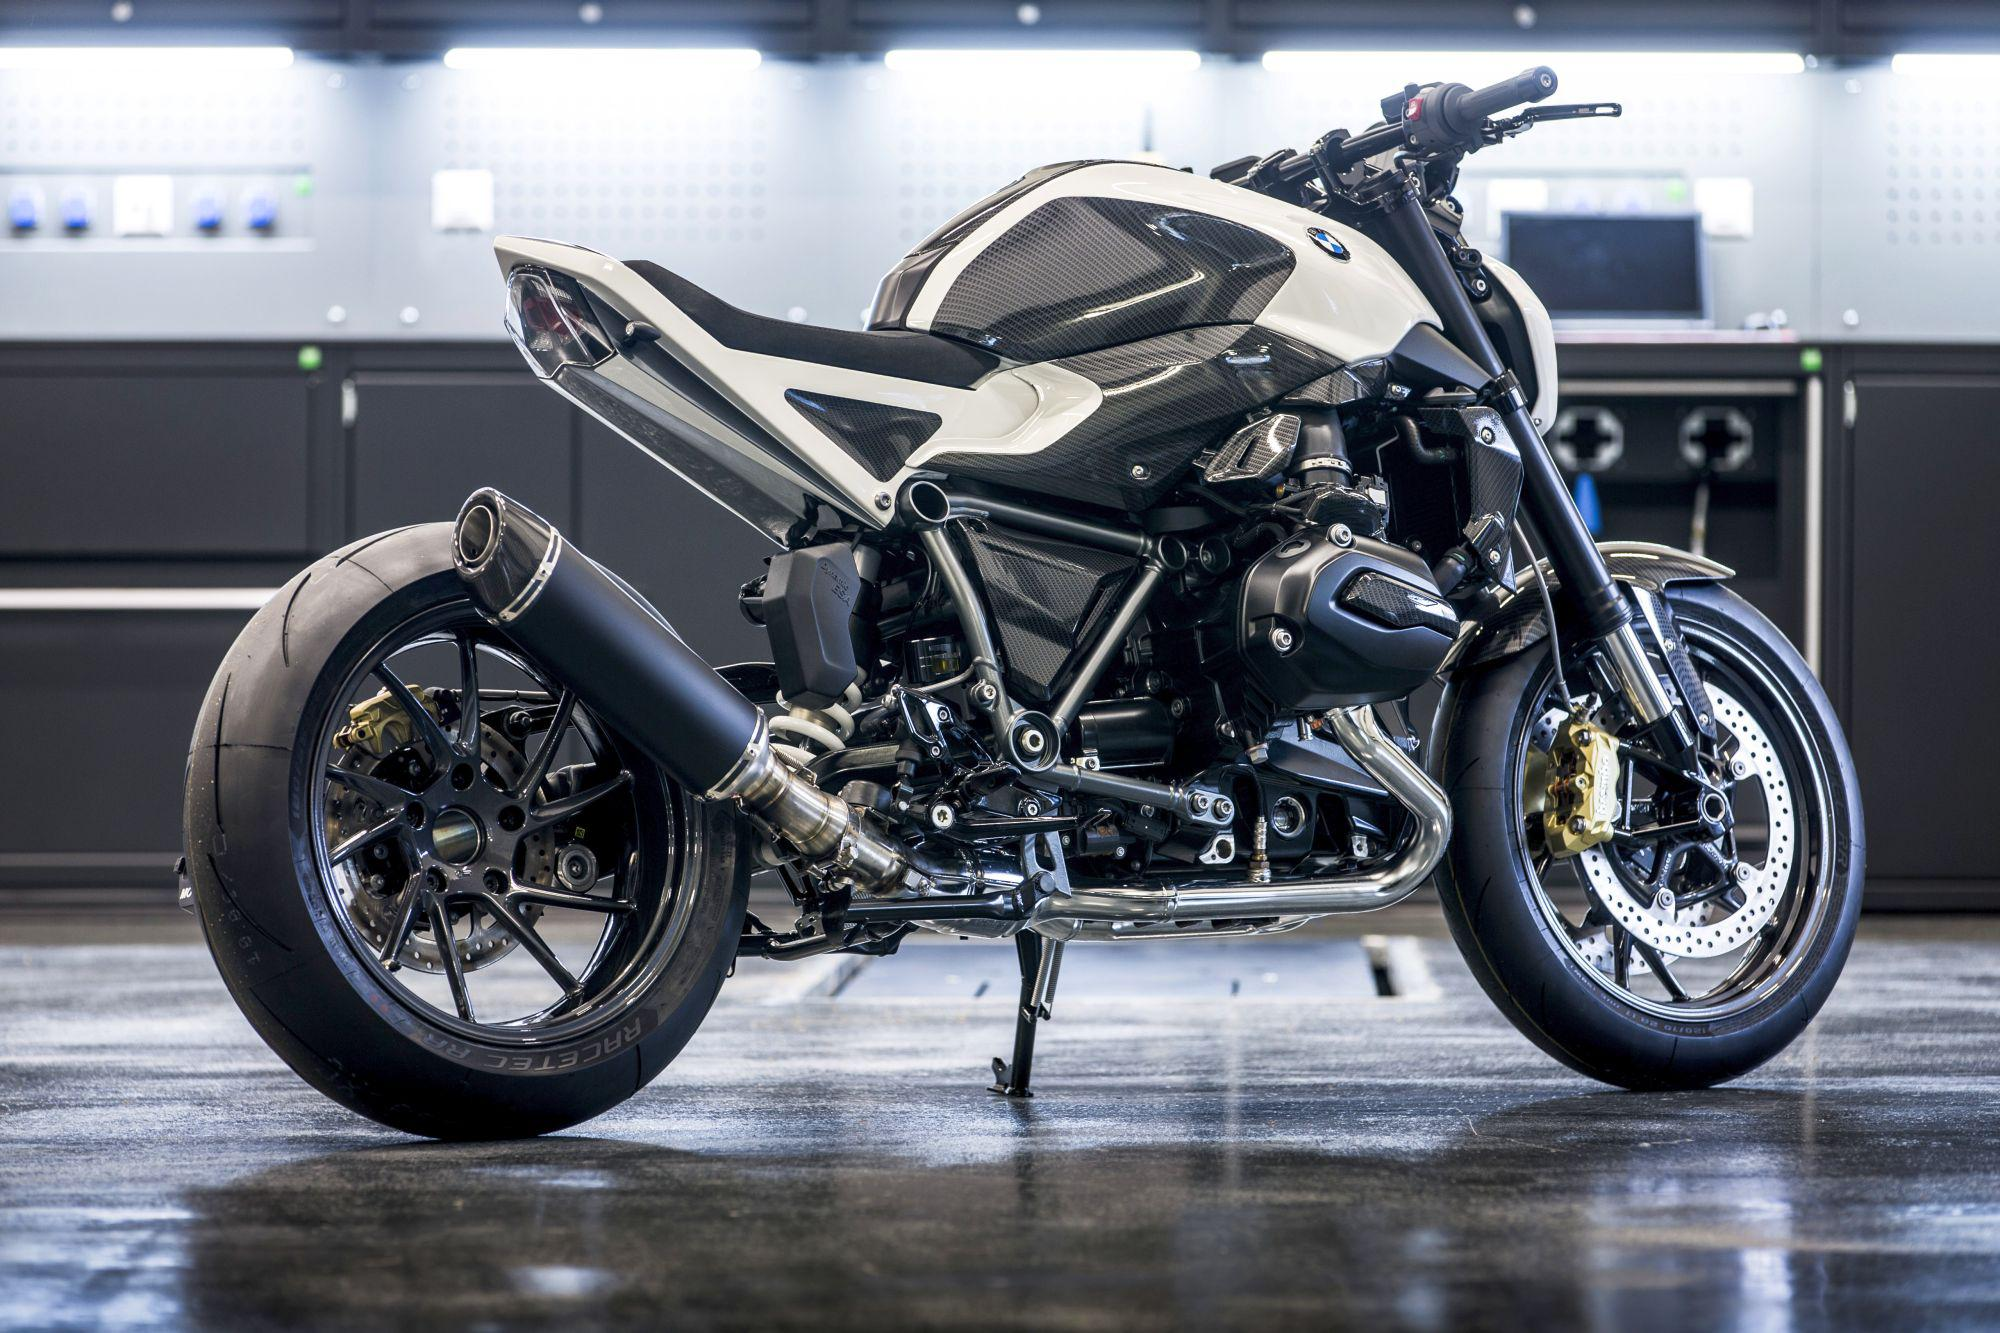 bmw-r1200r-streetfighter--7 Extraordinary Bmw R 1200 R Street Fighter Cars Trend